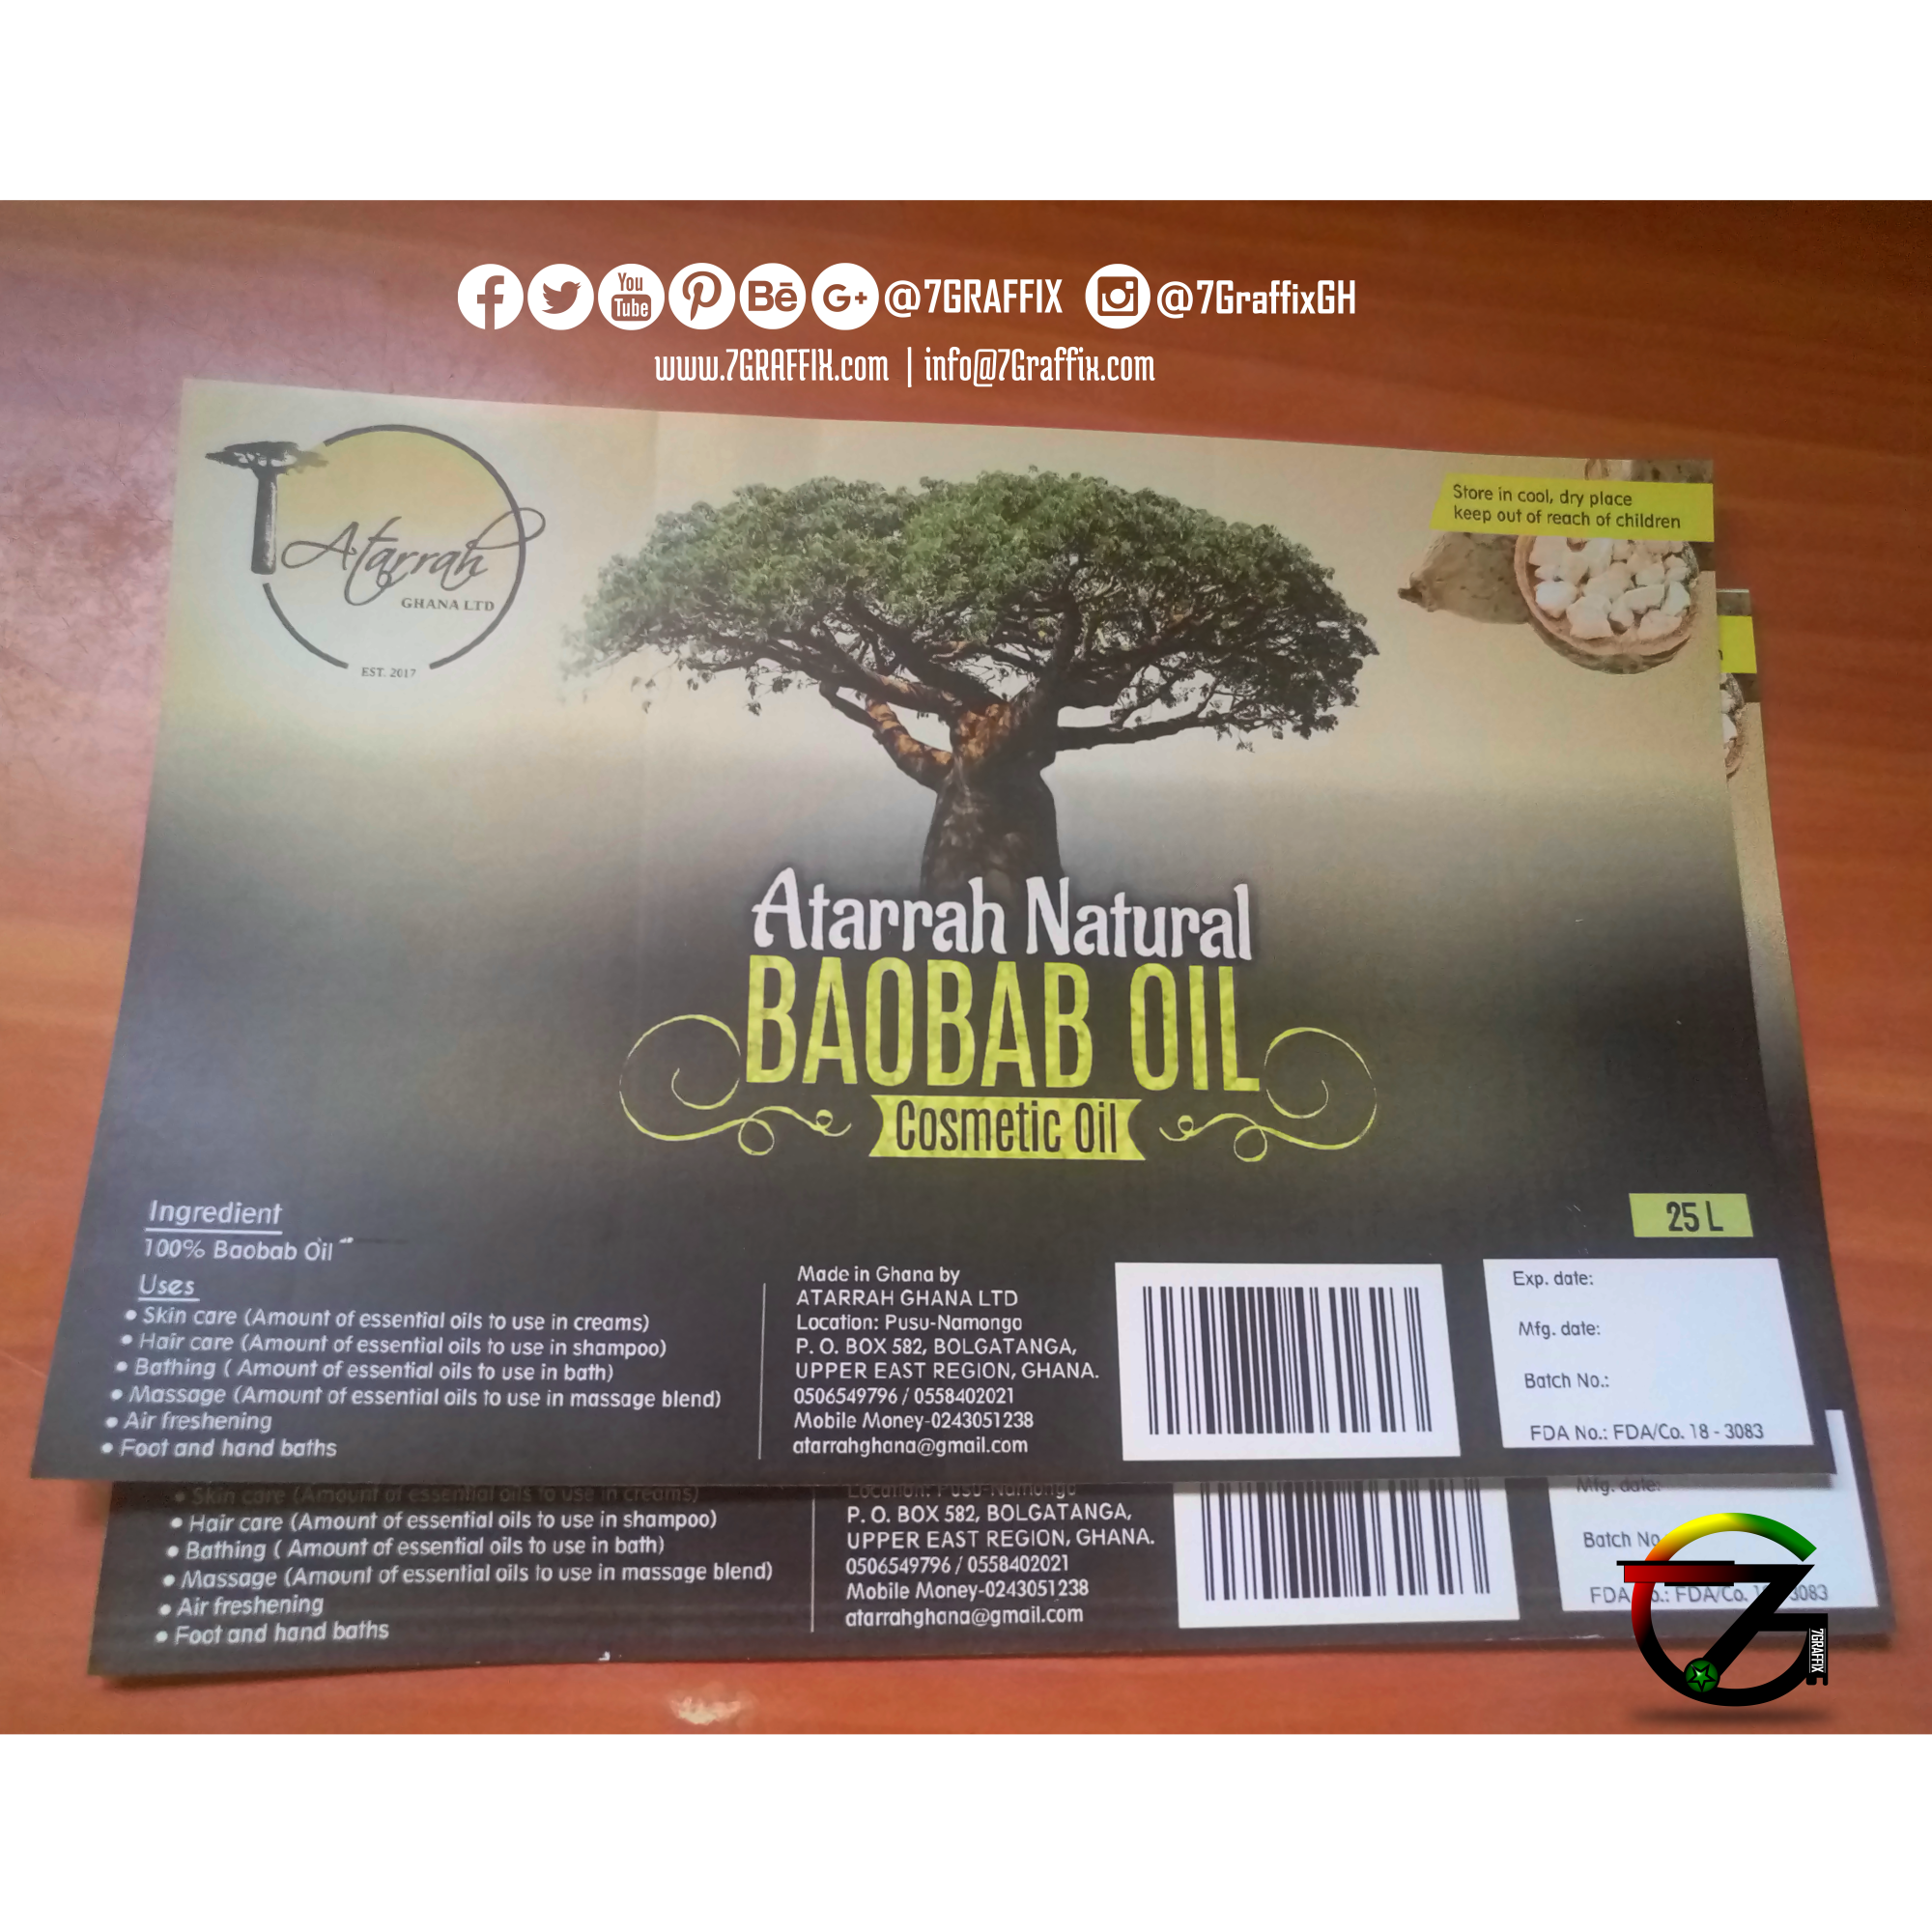 ATARRAH BOABAB OIL PRODUCT LABEL PRINT (BY 7GRAFFIX